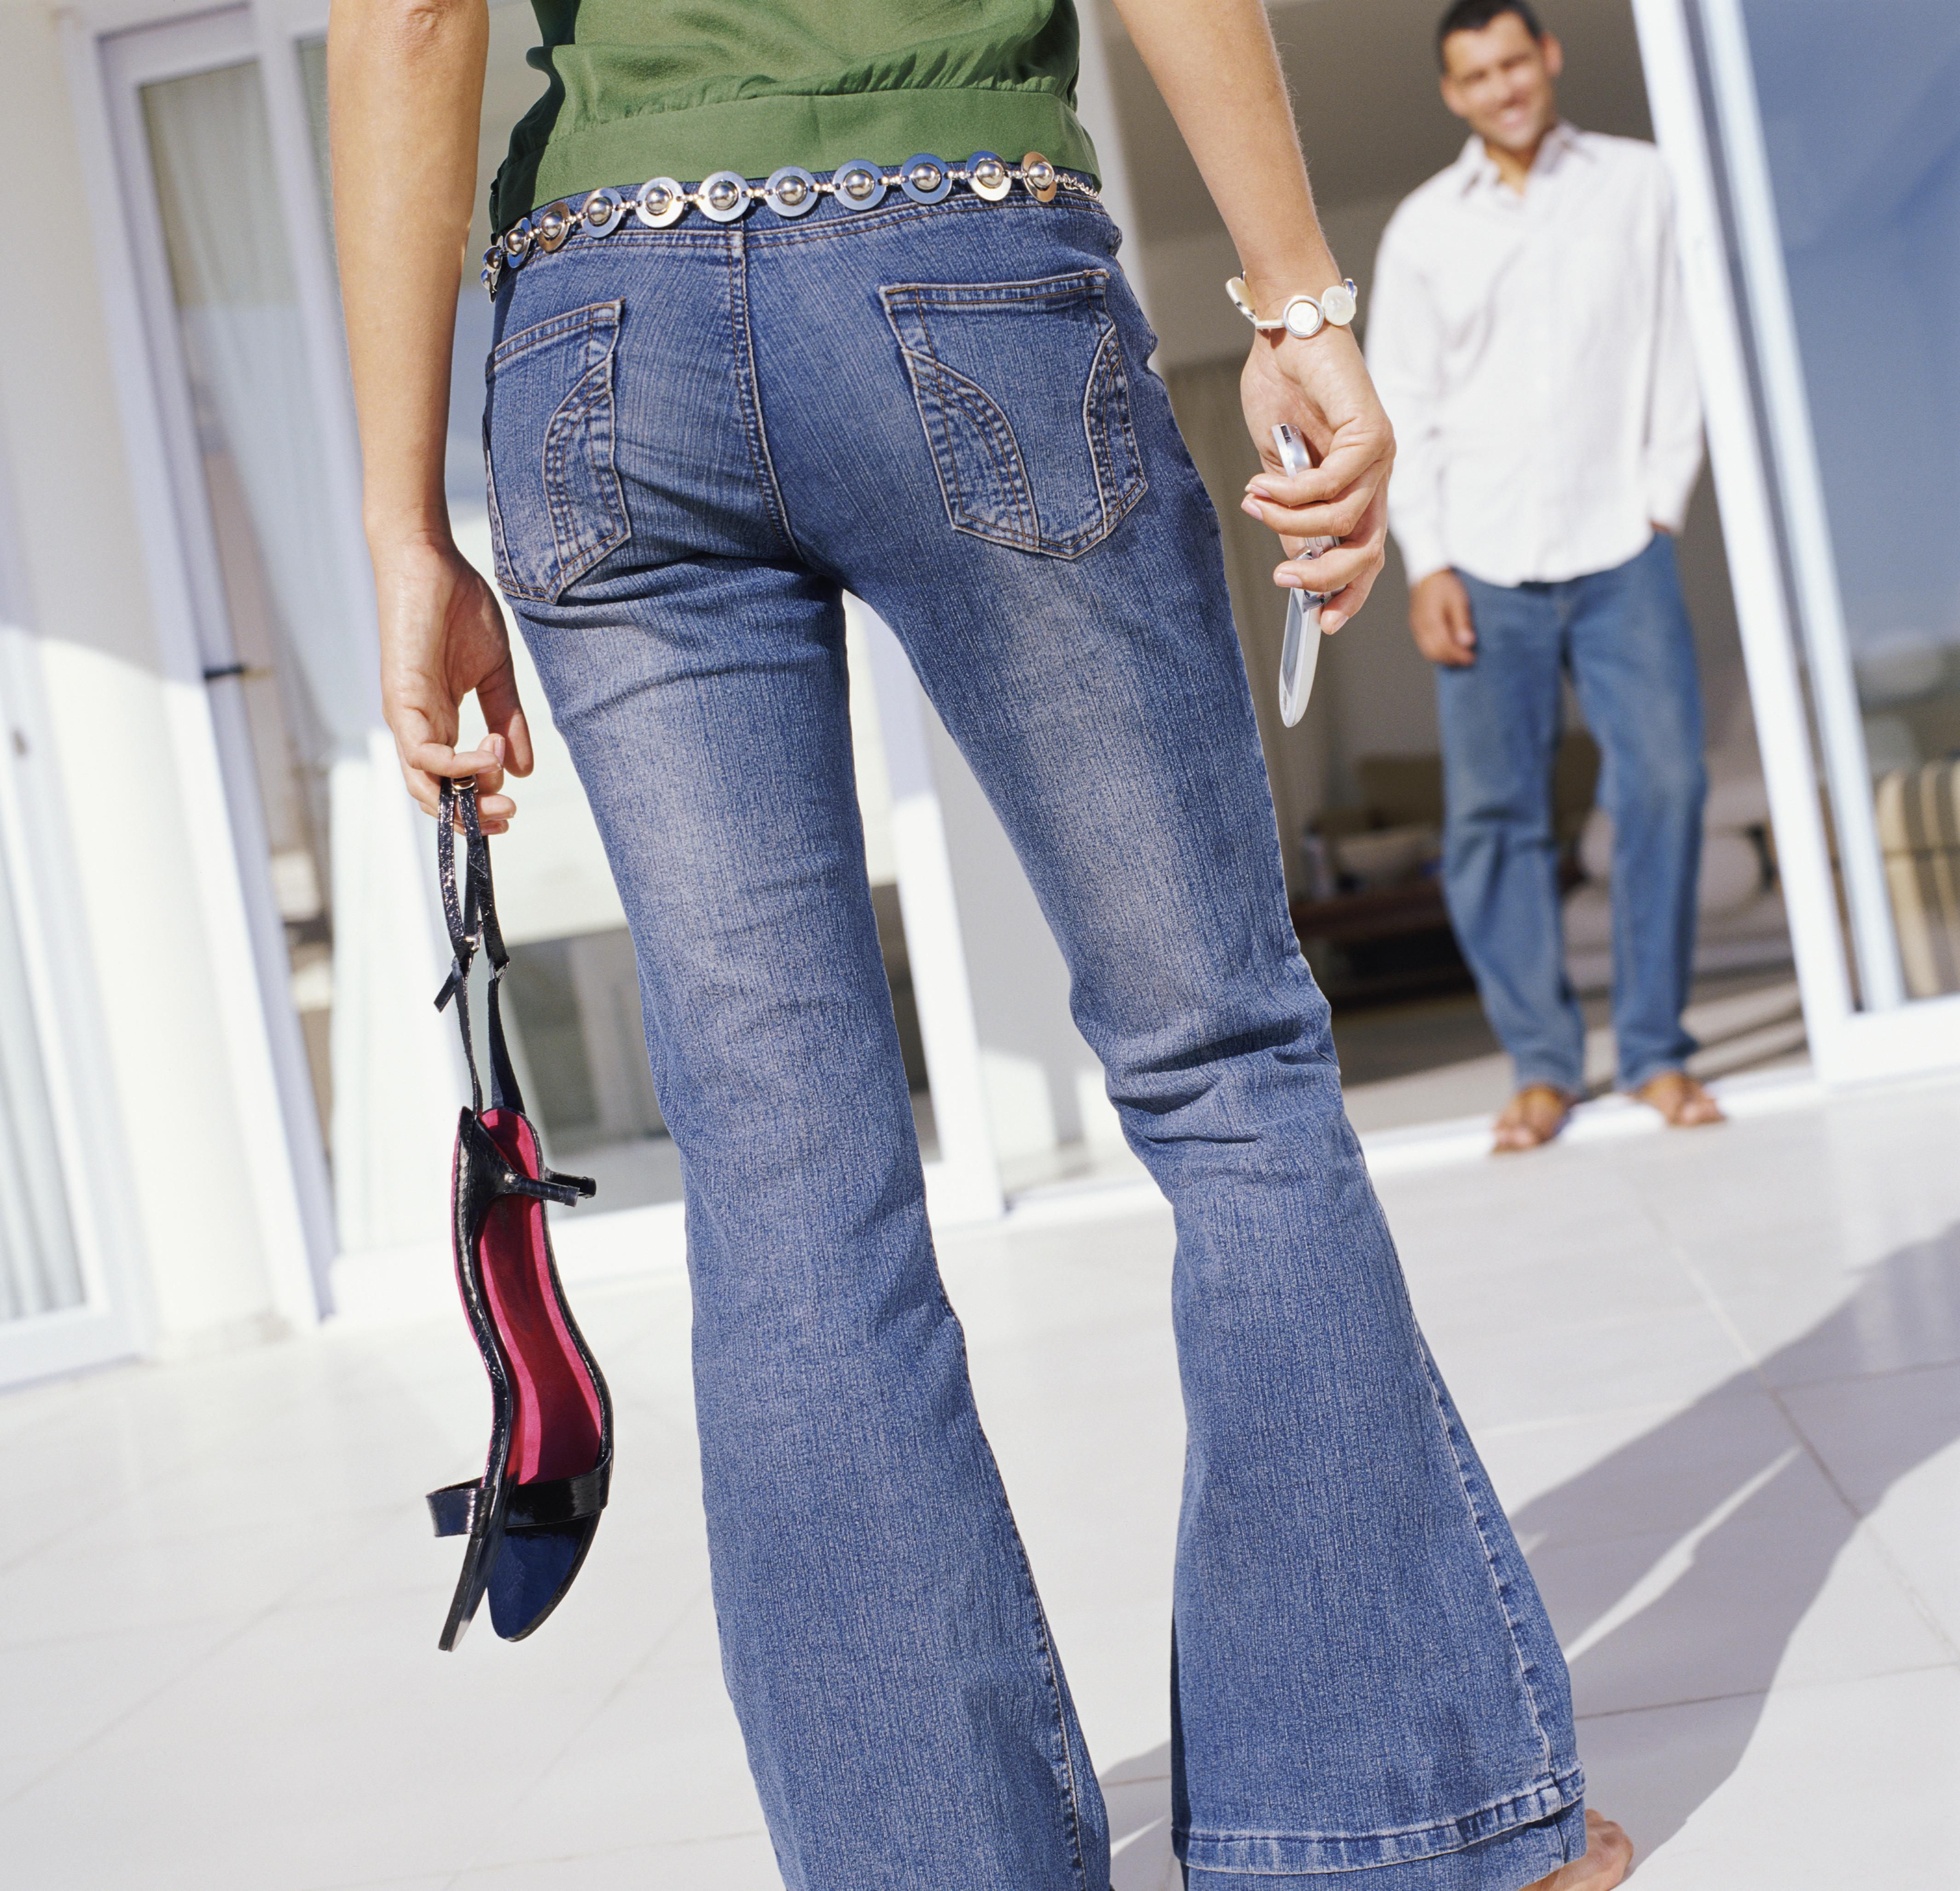 Rear View Low Section Shot of a Woman Wearing Flared Jeans and Holding a Mobile Phone